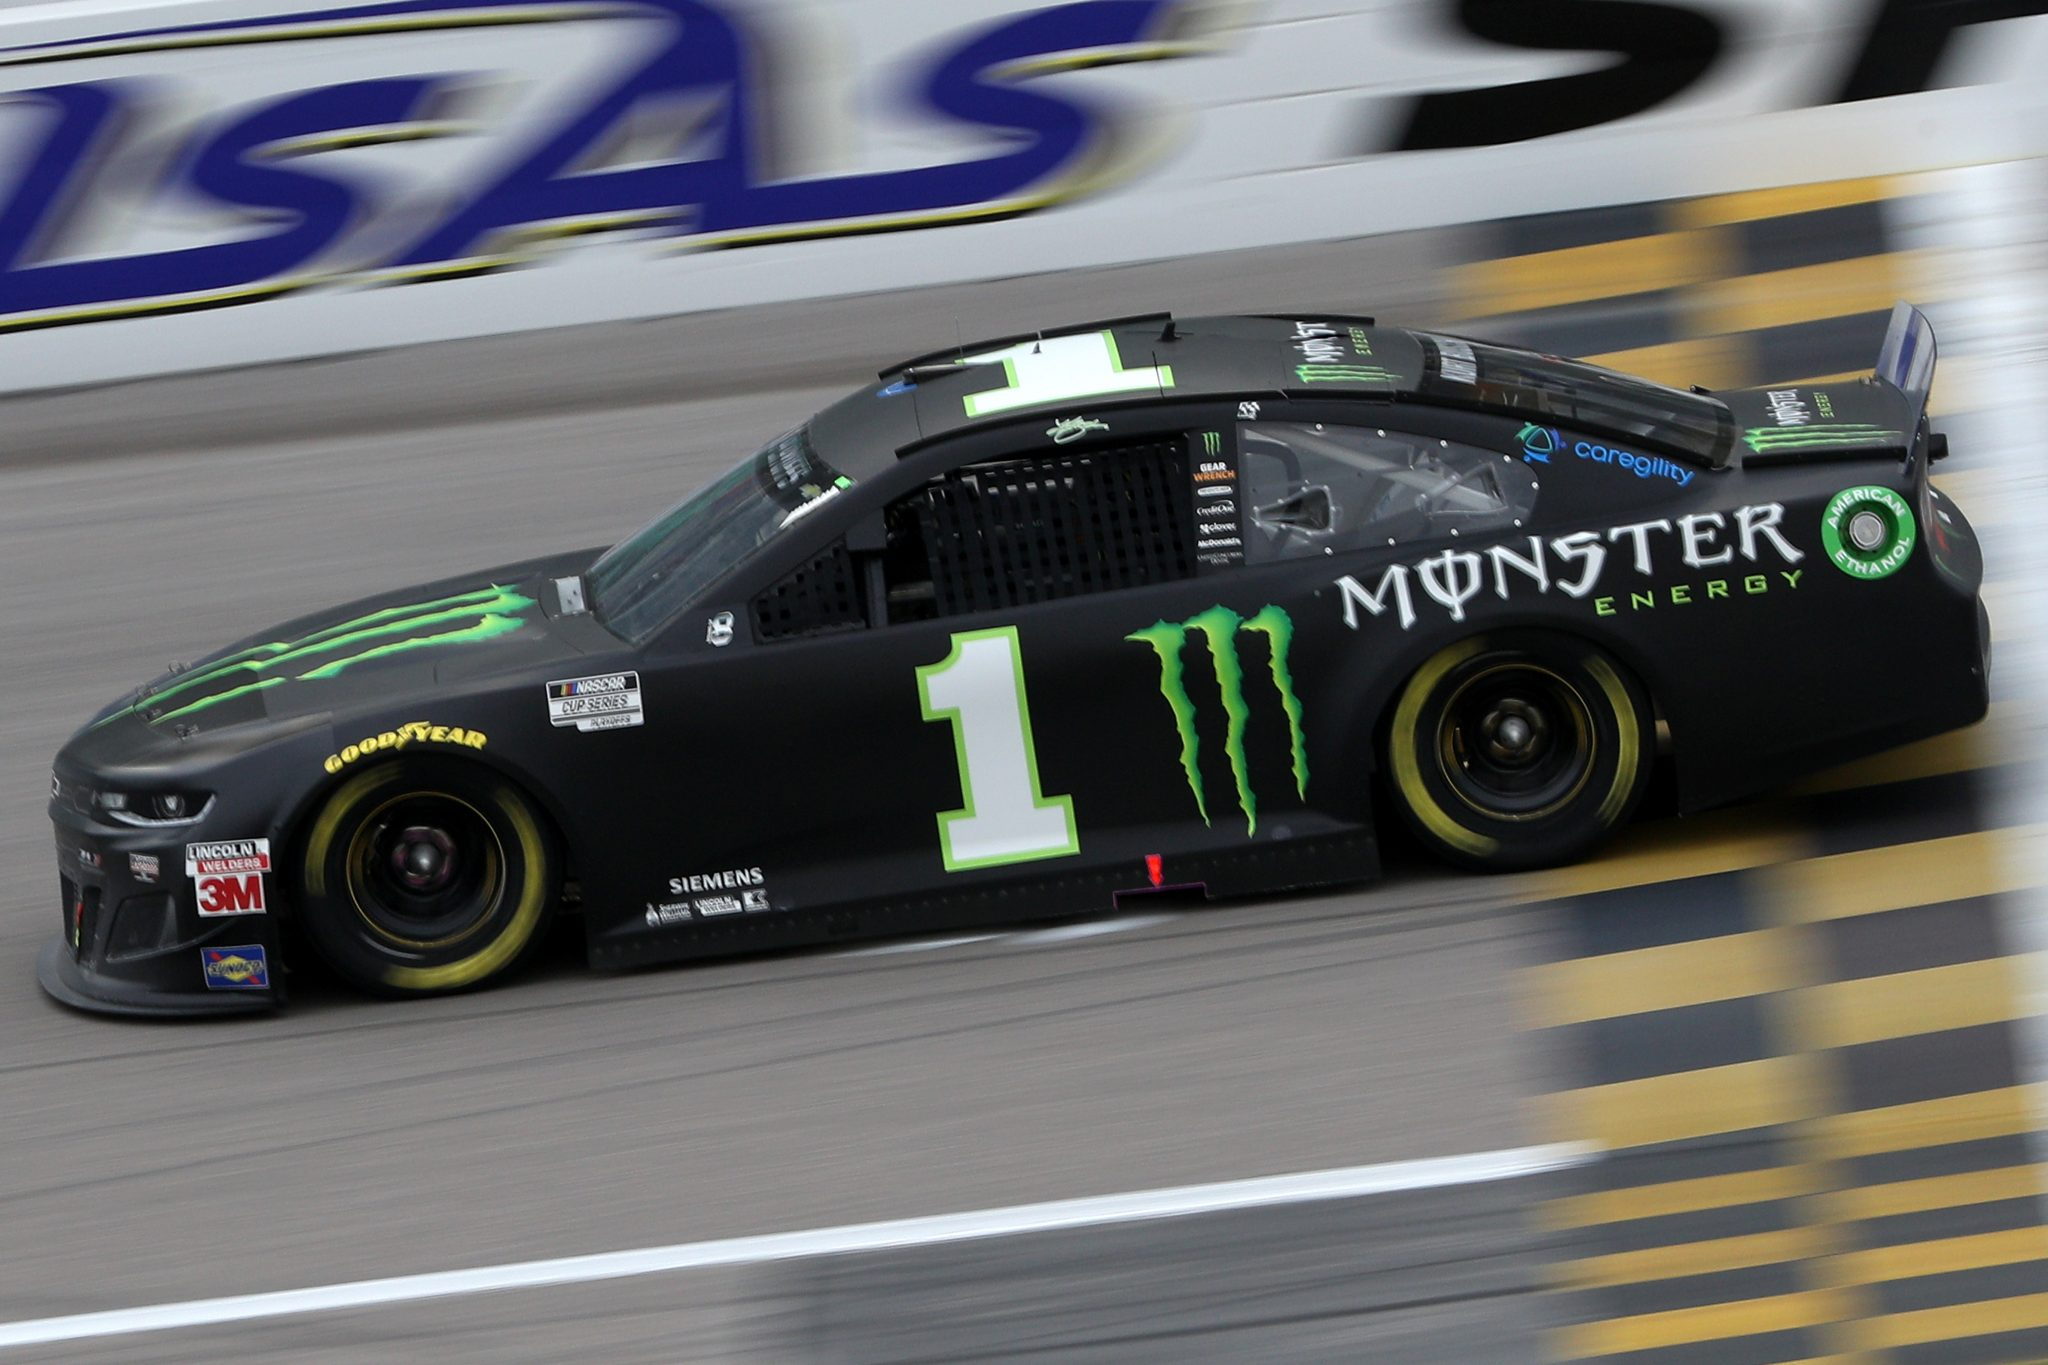 KANSAS CITY, KANSAS - OCTOBER 18: Kurt Busch, driver of the #1 Monster Energy Chevrolet, drives during the NASCAR Cup Series Hollywood Casino 400 at Kansas Speedway on October 18, 2020 in Kansas City, Kansas. (Photo by Chris Graythen/Getty Images) | Getty Images